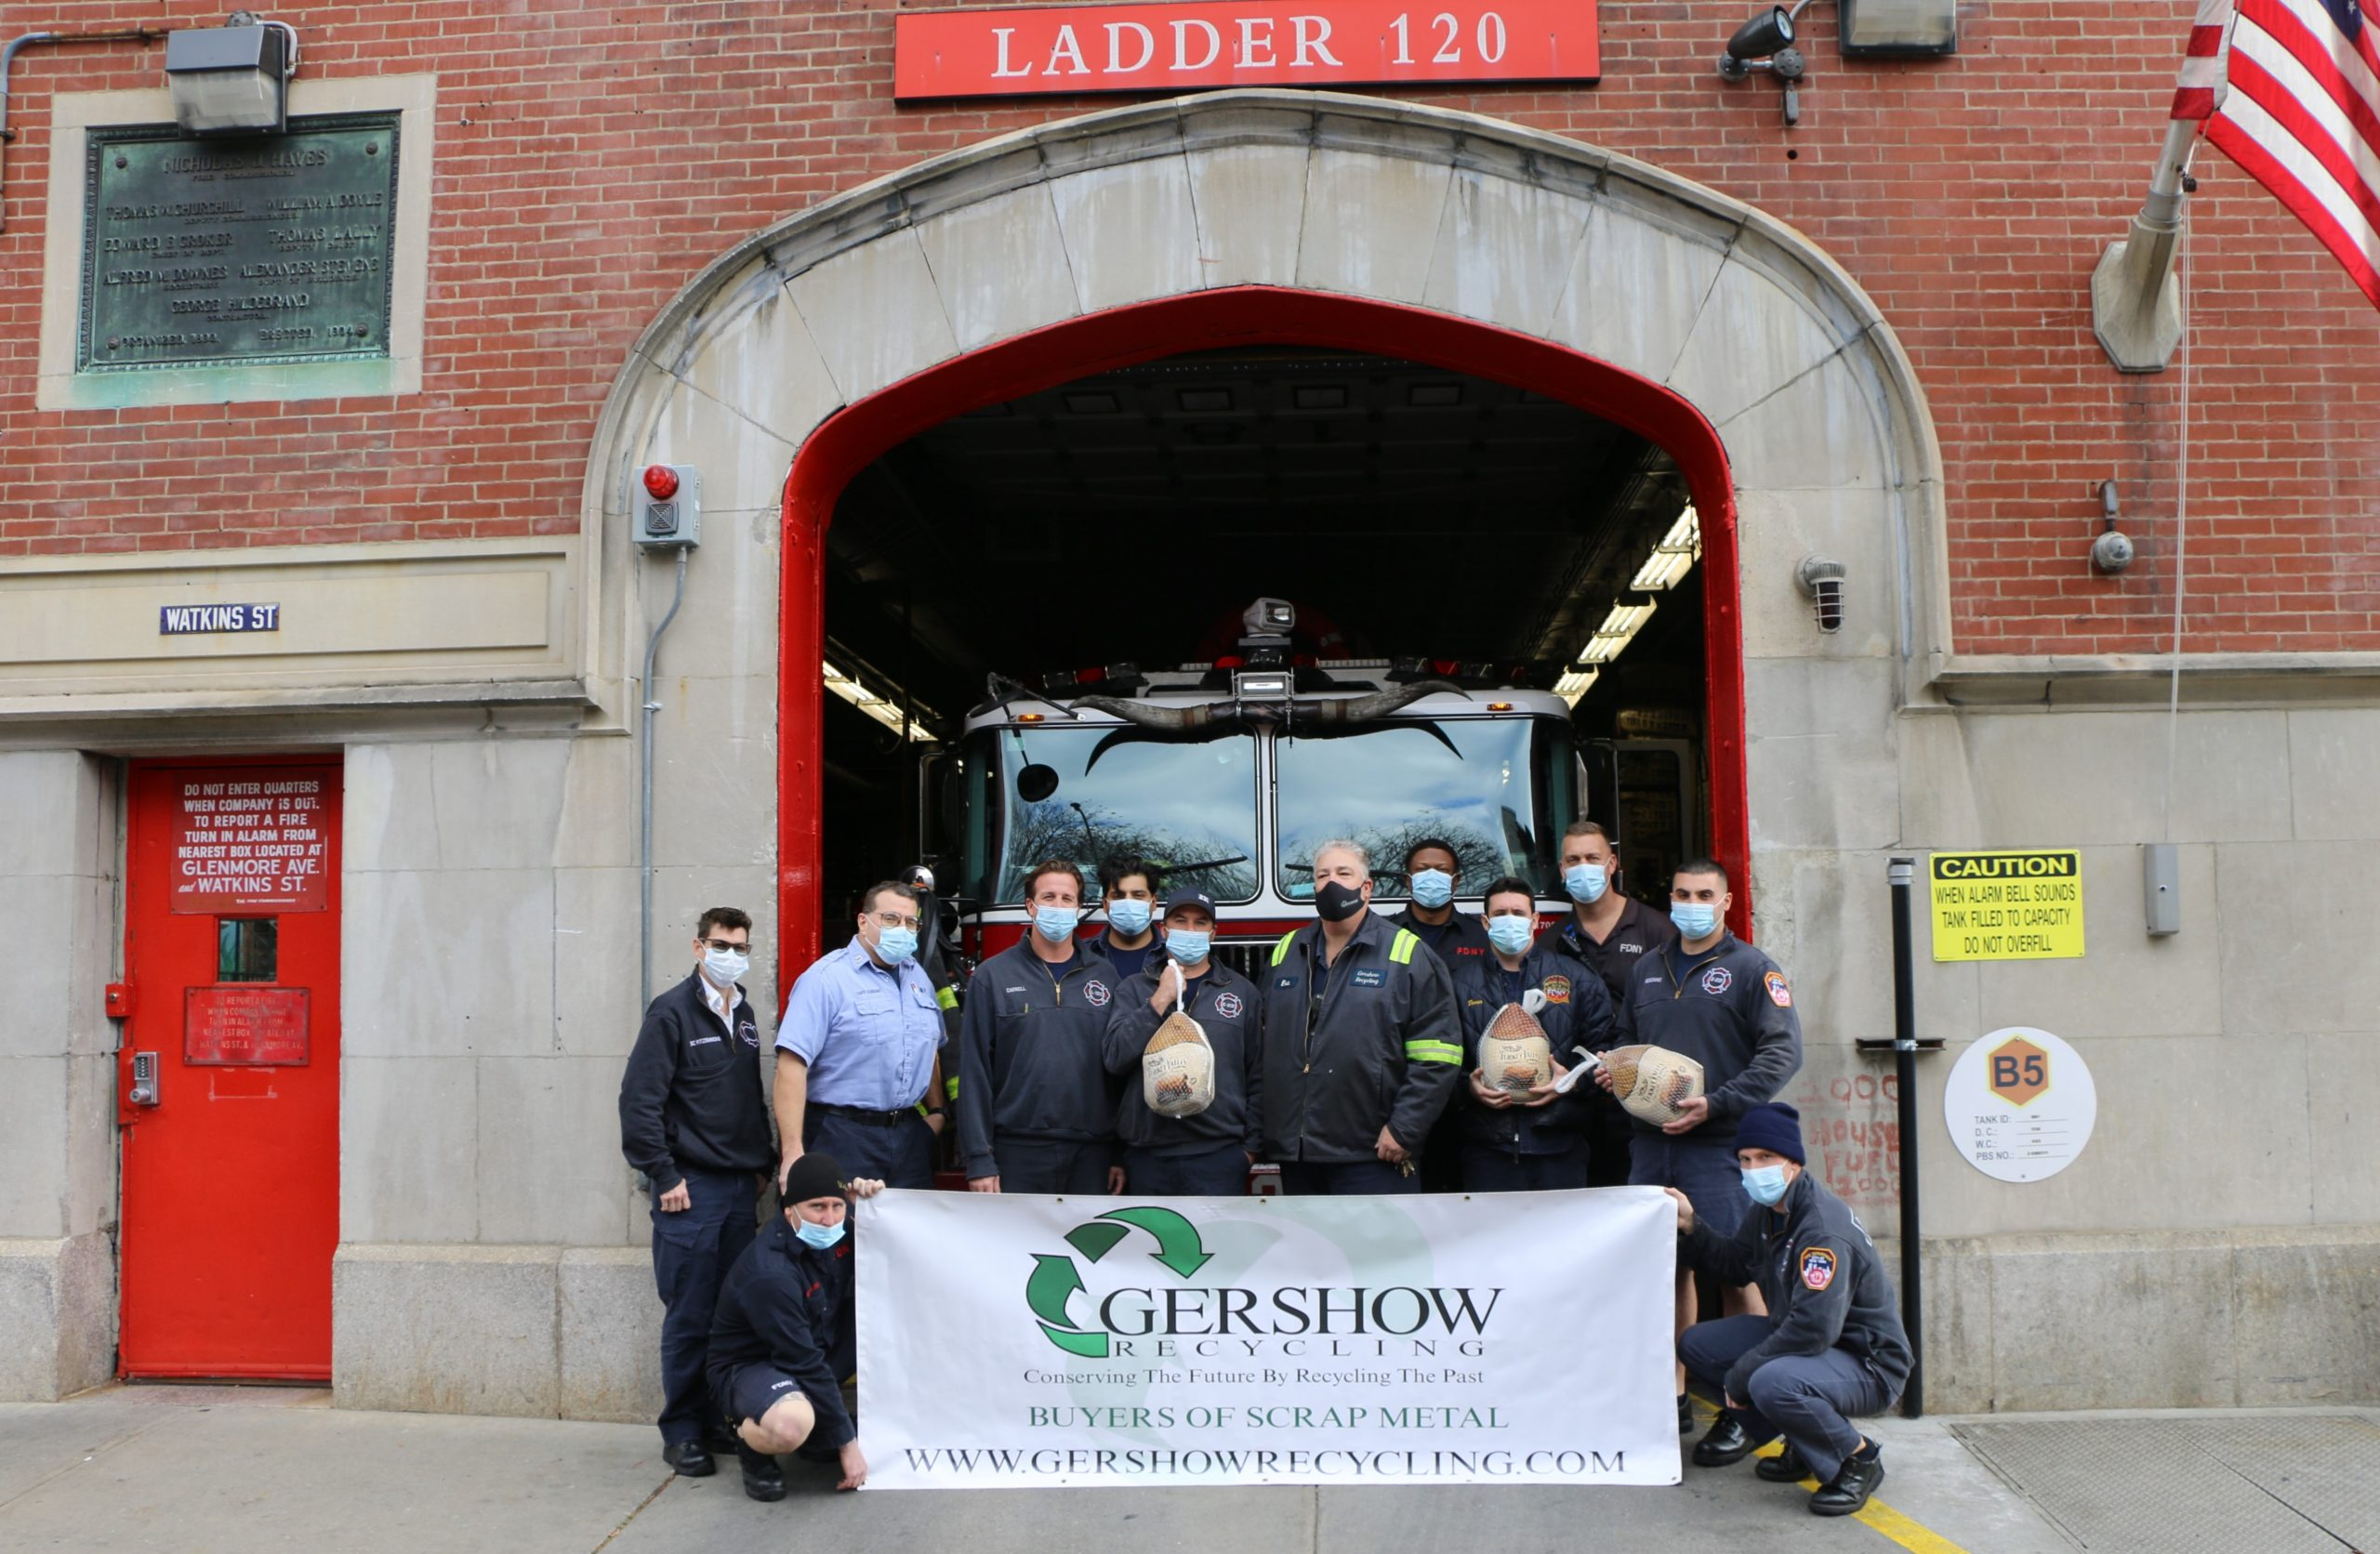 Eric Kugler (standing, fifth from right), Manager, Gershow Recycling, presented turkeys to members of FDNY's Engine 231/Ladder 120 at Watkins Street.